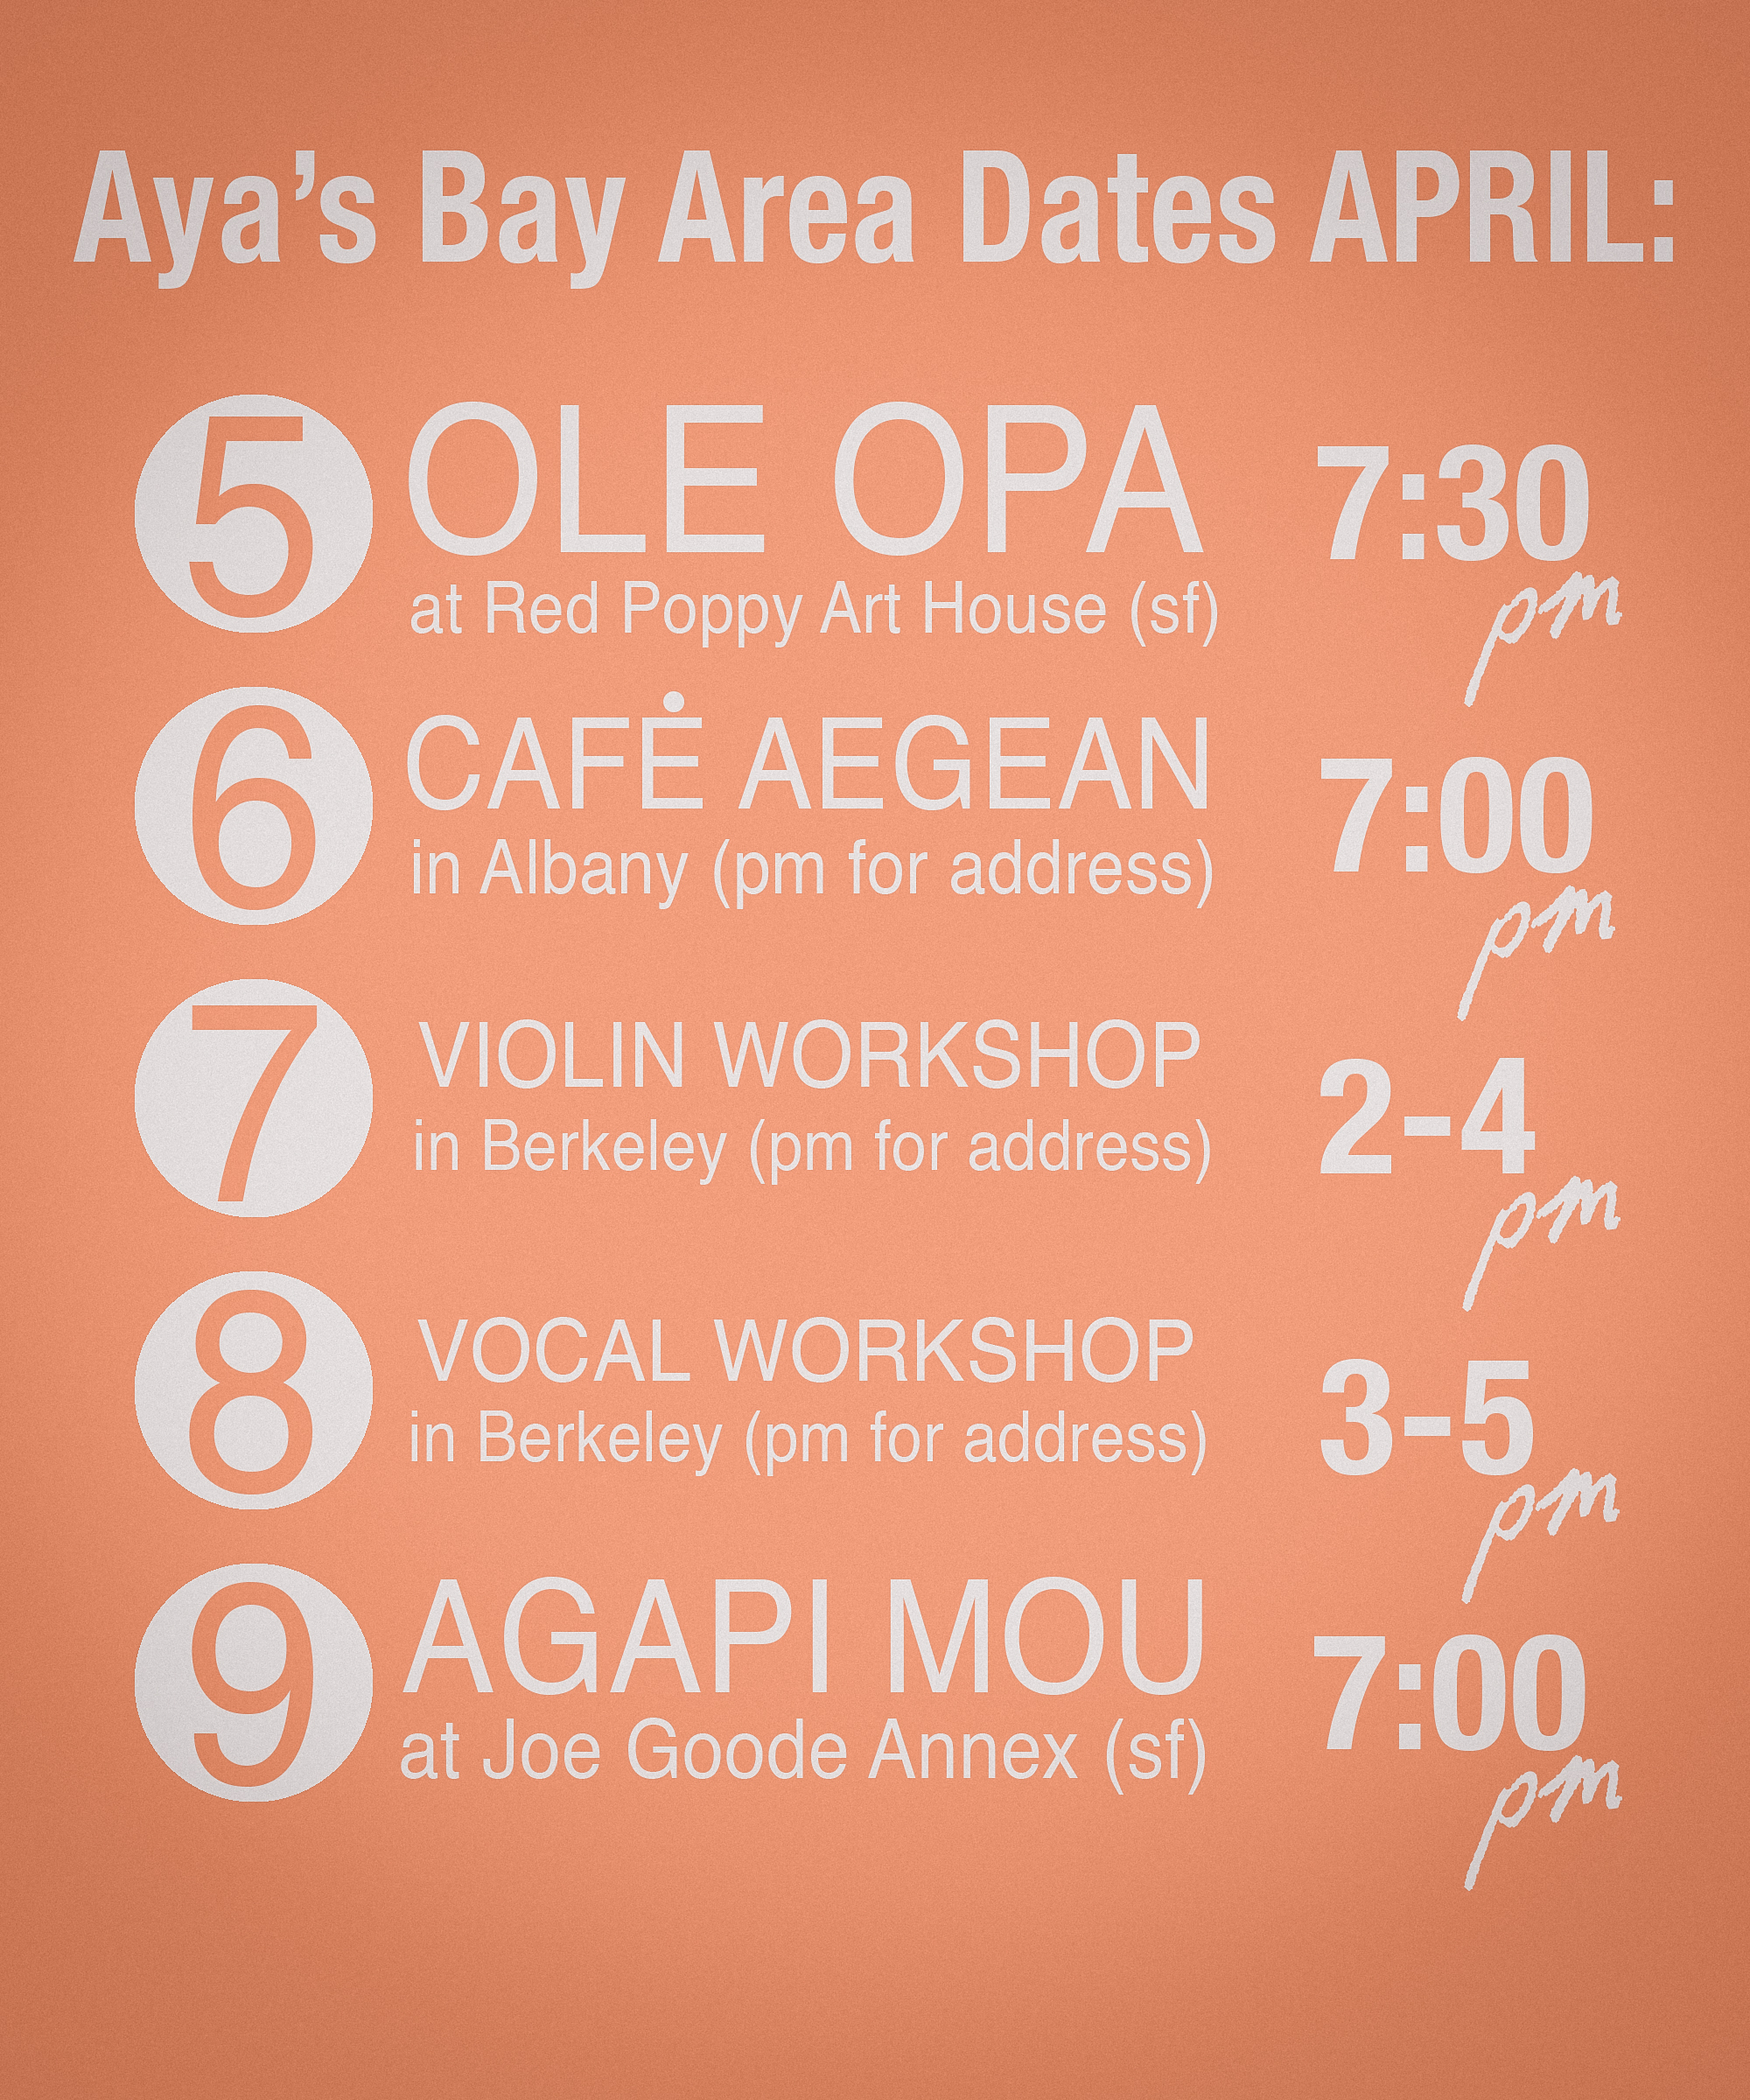 Aya's Bay Area Dates April.jpg